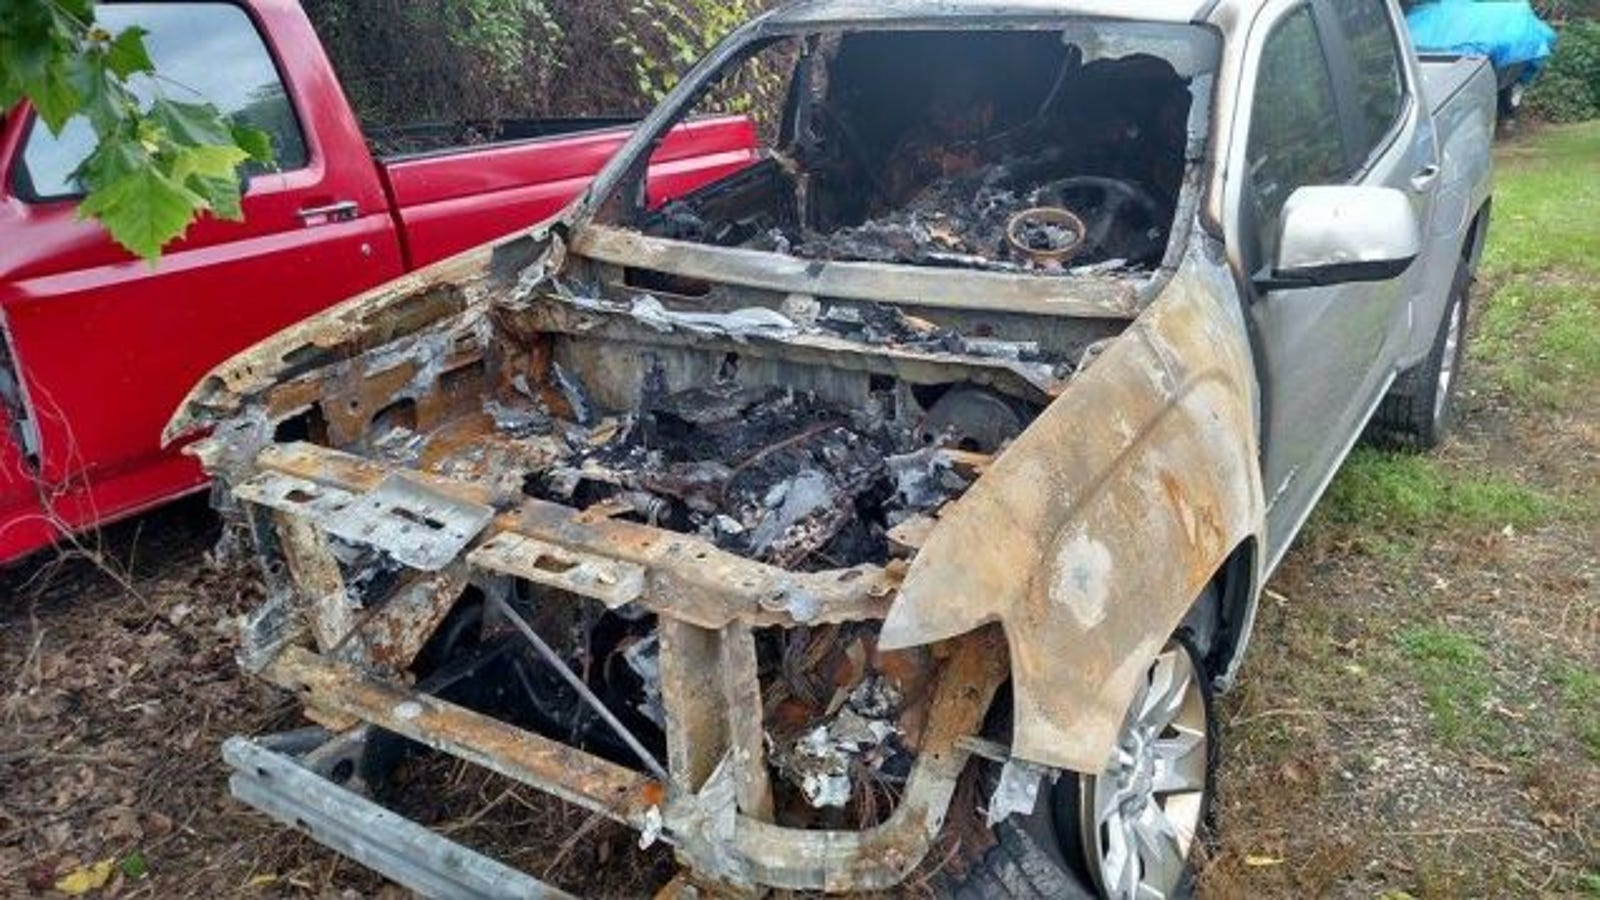 This Guy's 2015 GMC Canyon Caught Fire And He's Had No Luck With GM